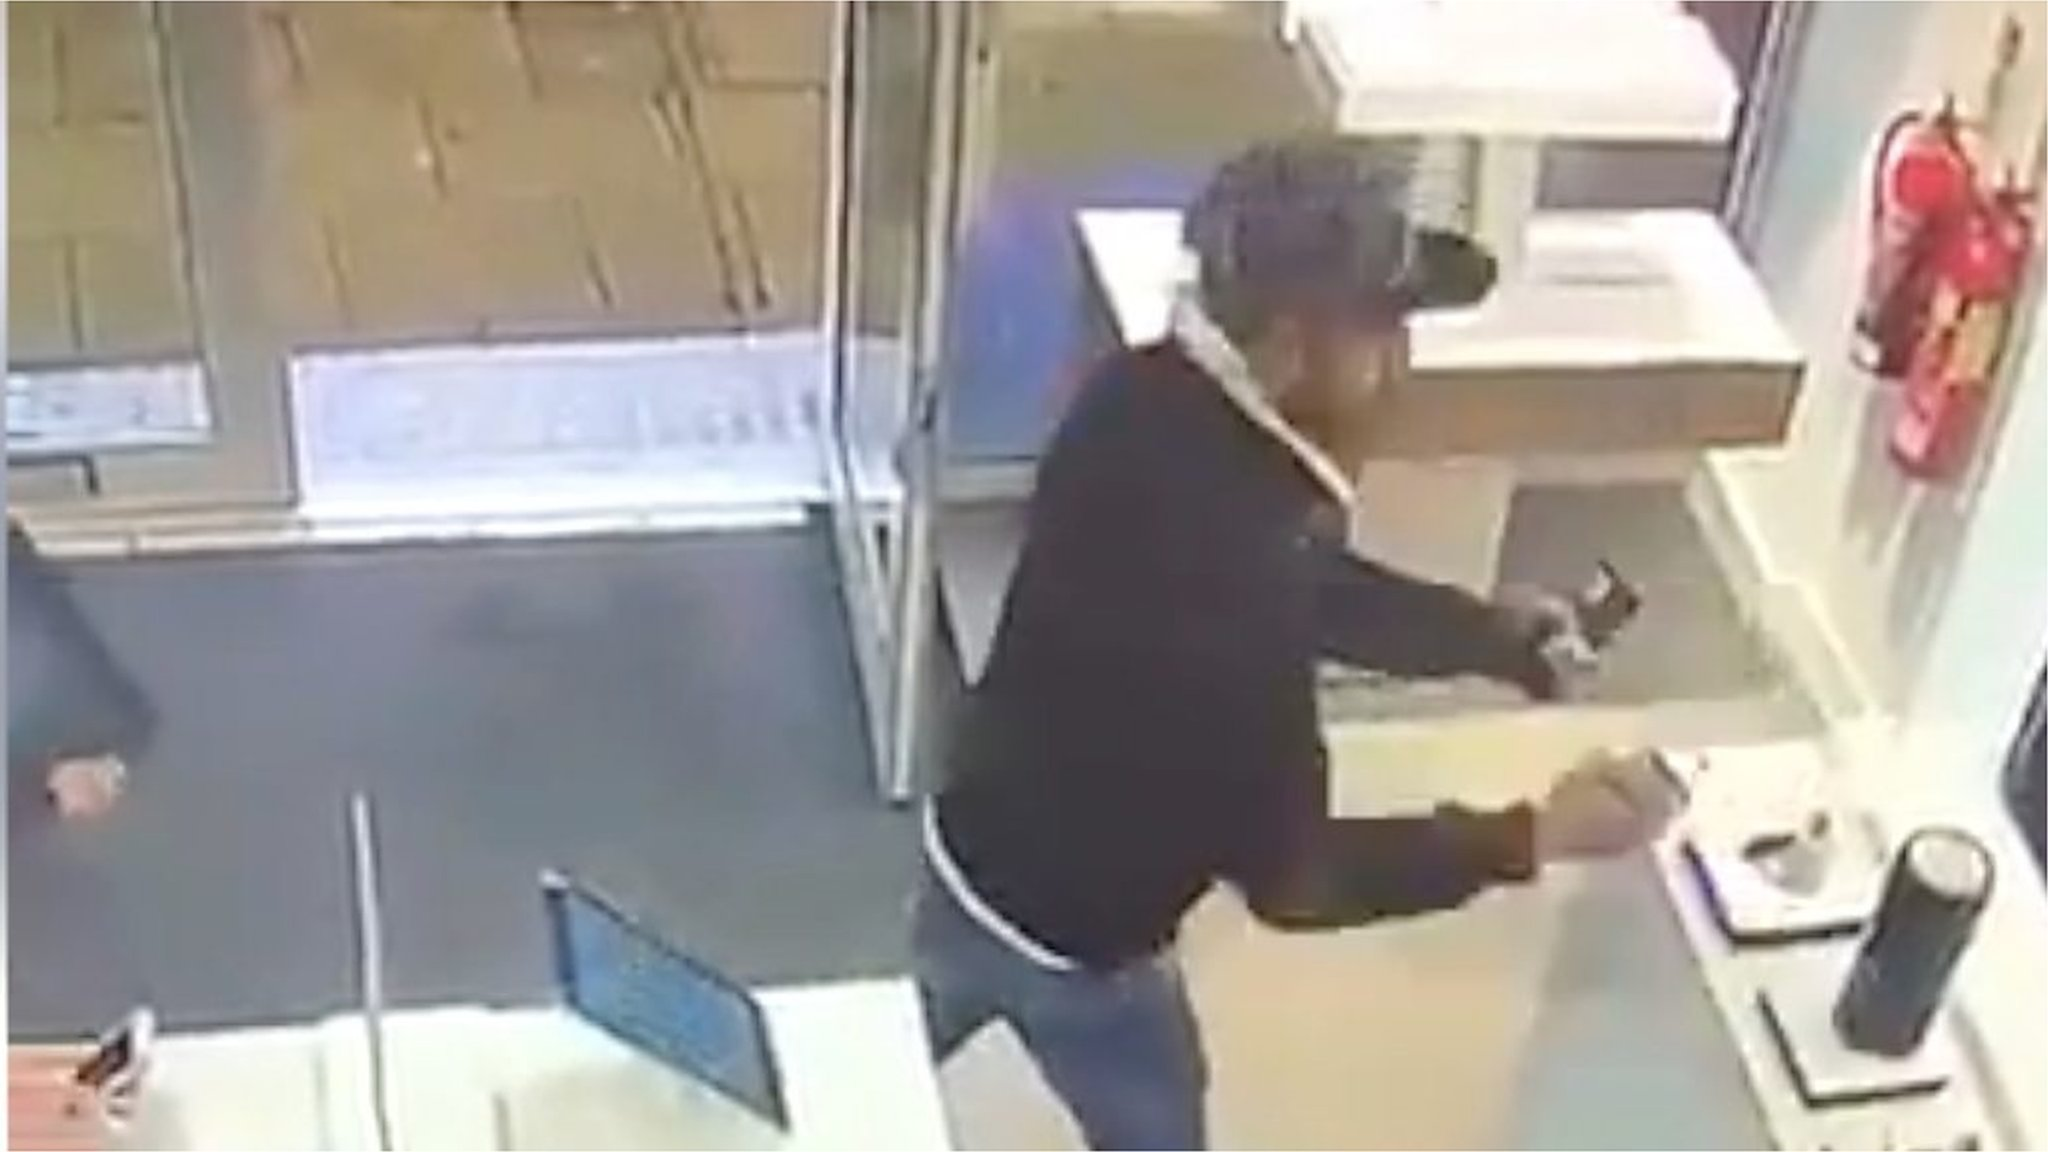 Phone shop staff watch as thief rips mobiles from shelf